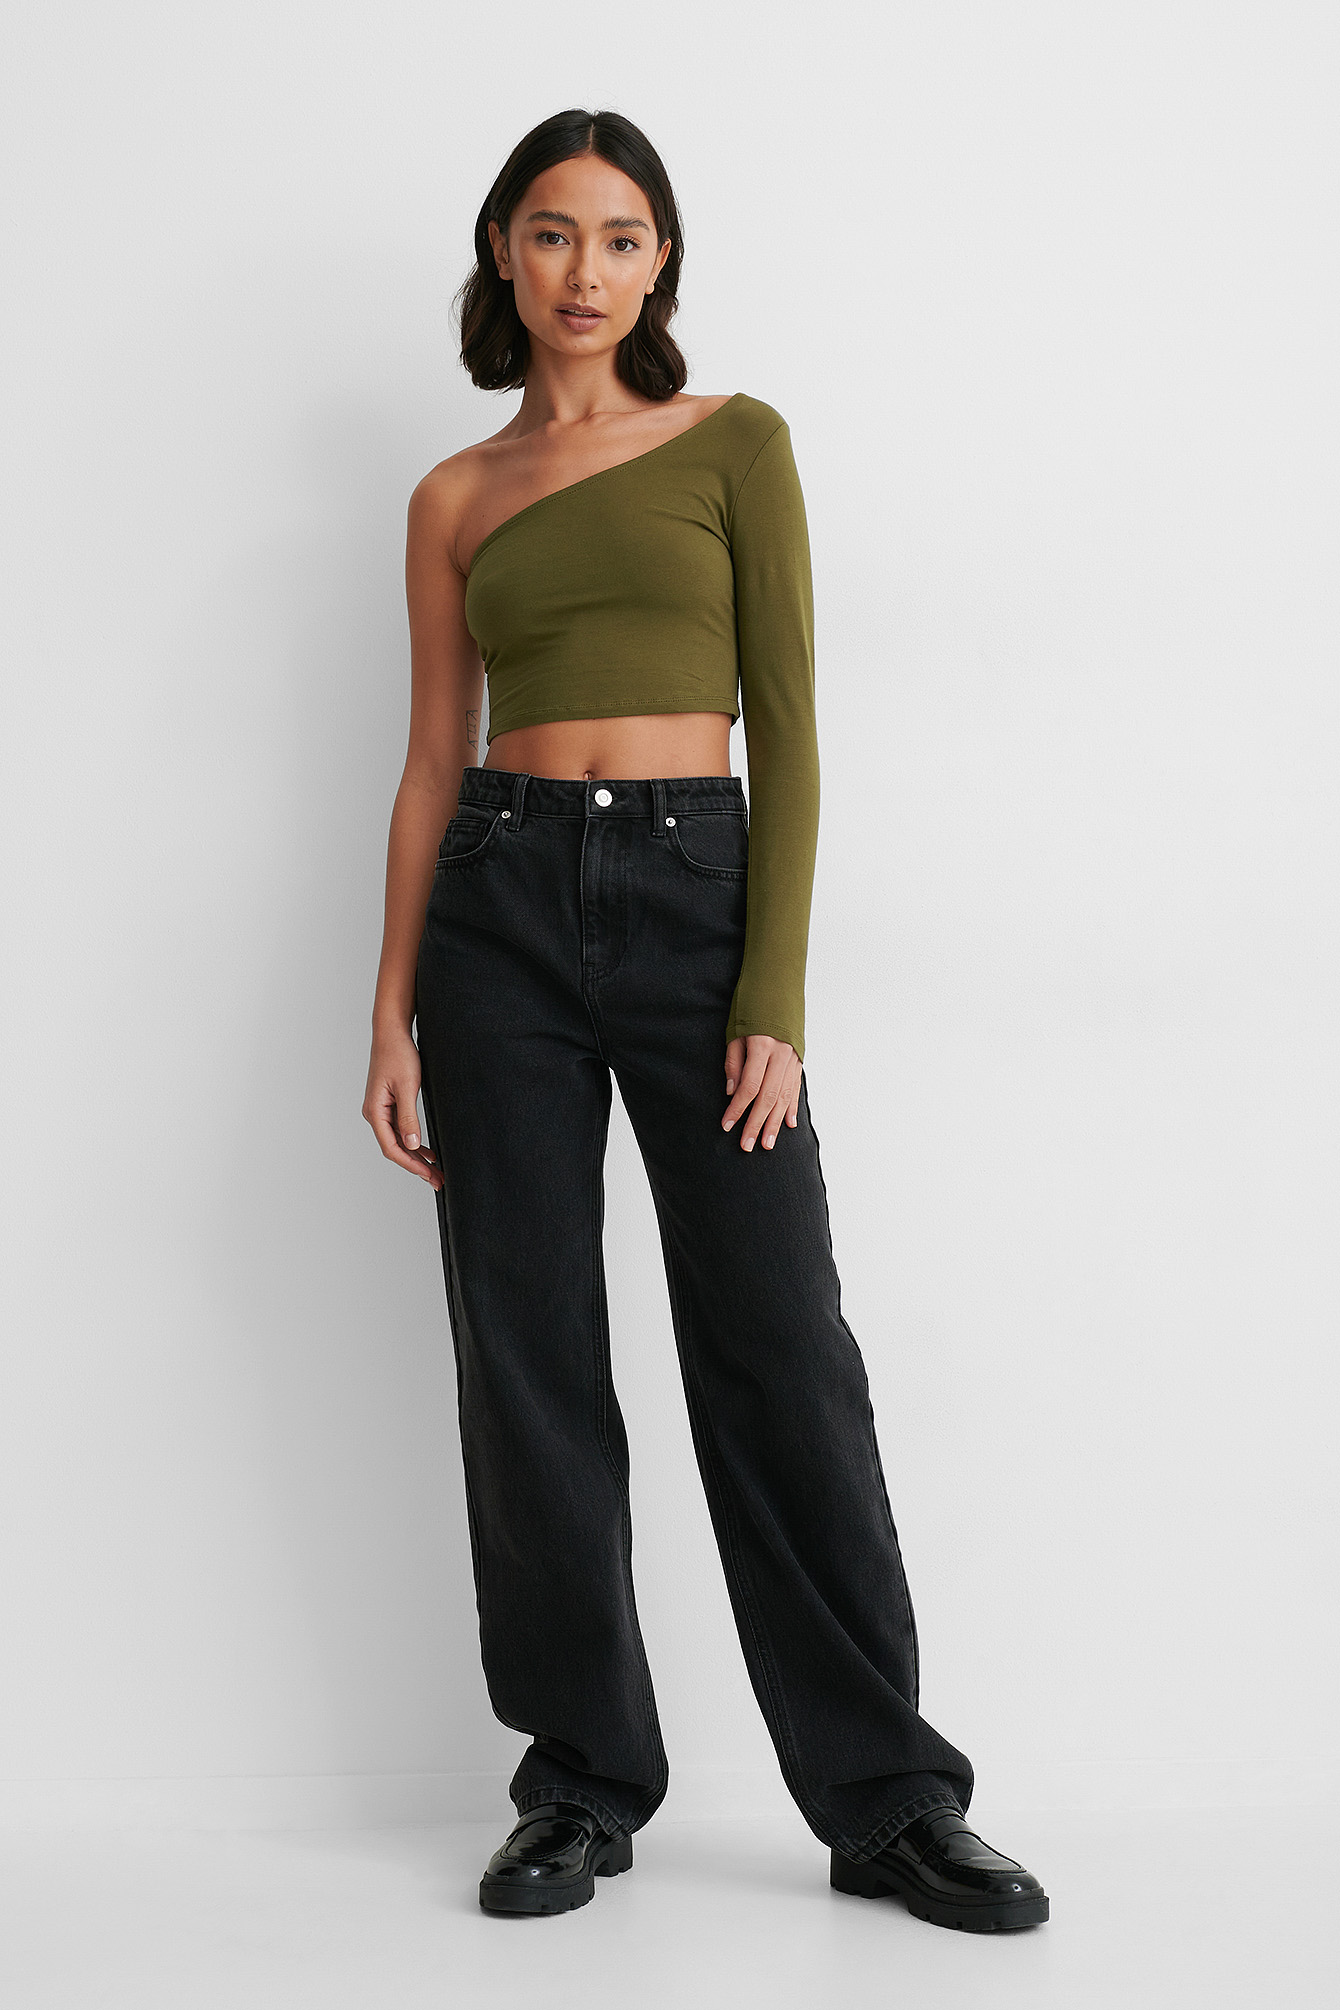 Khaki One Sleeve Crop Top